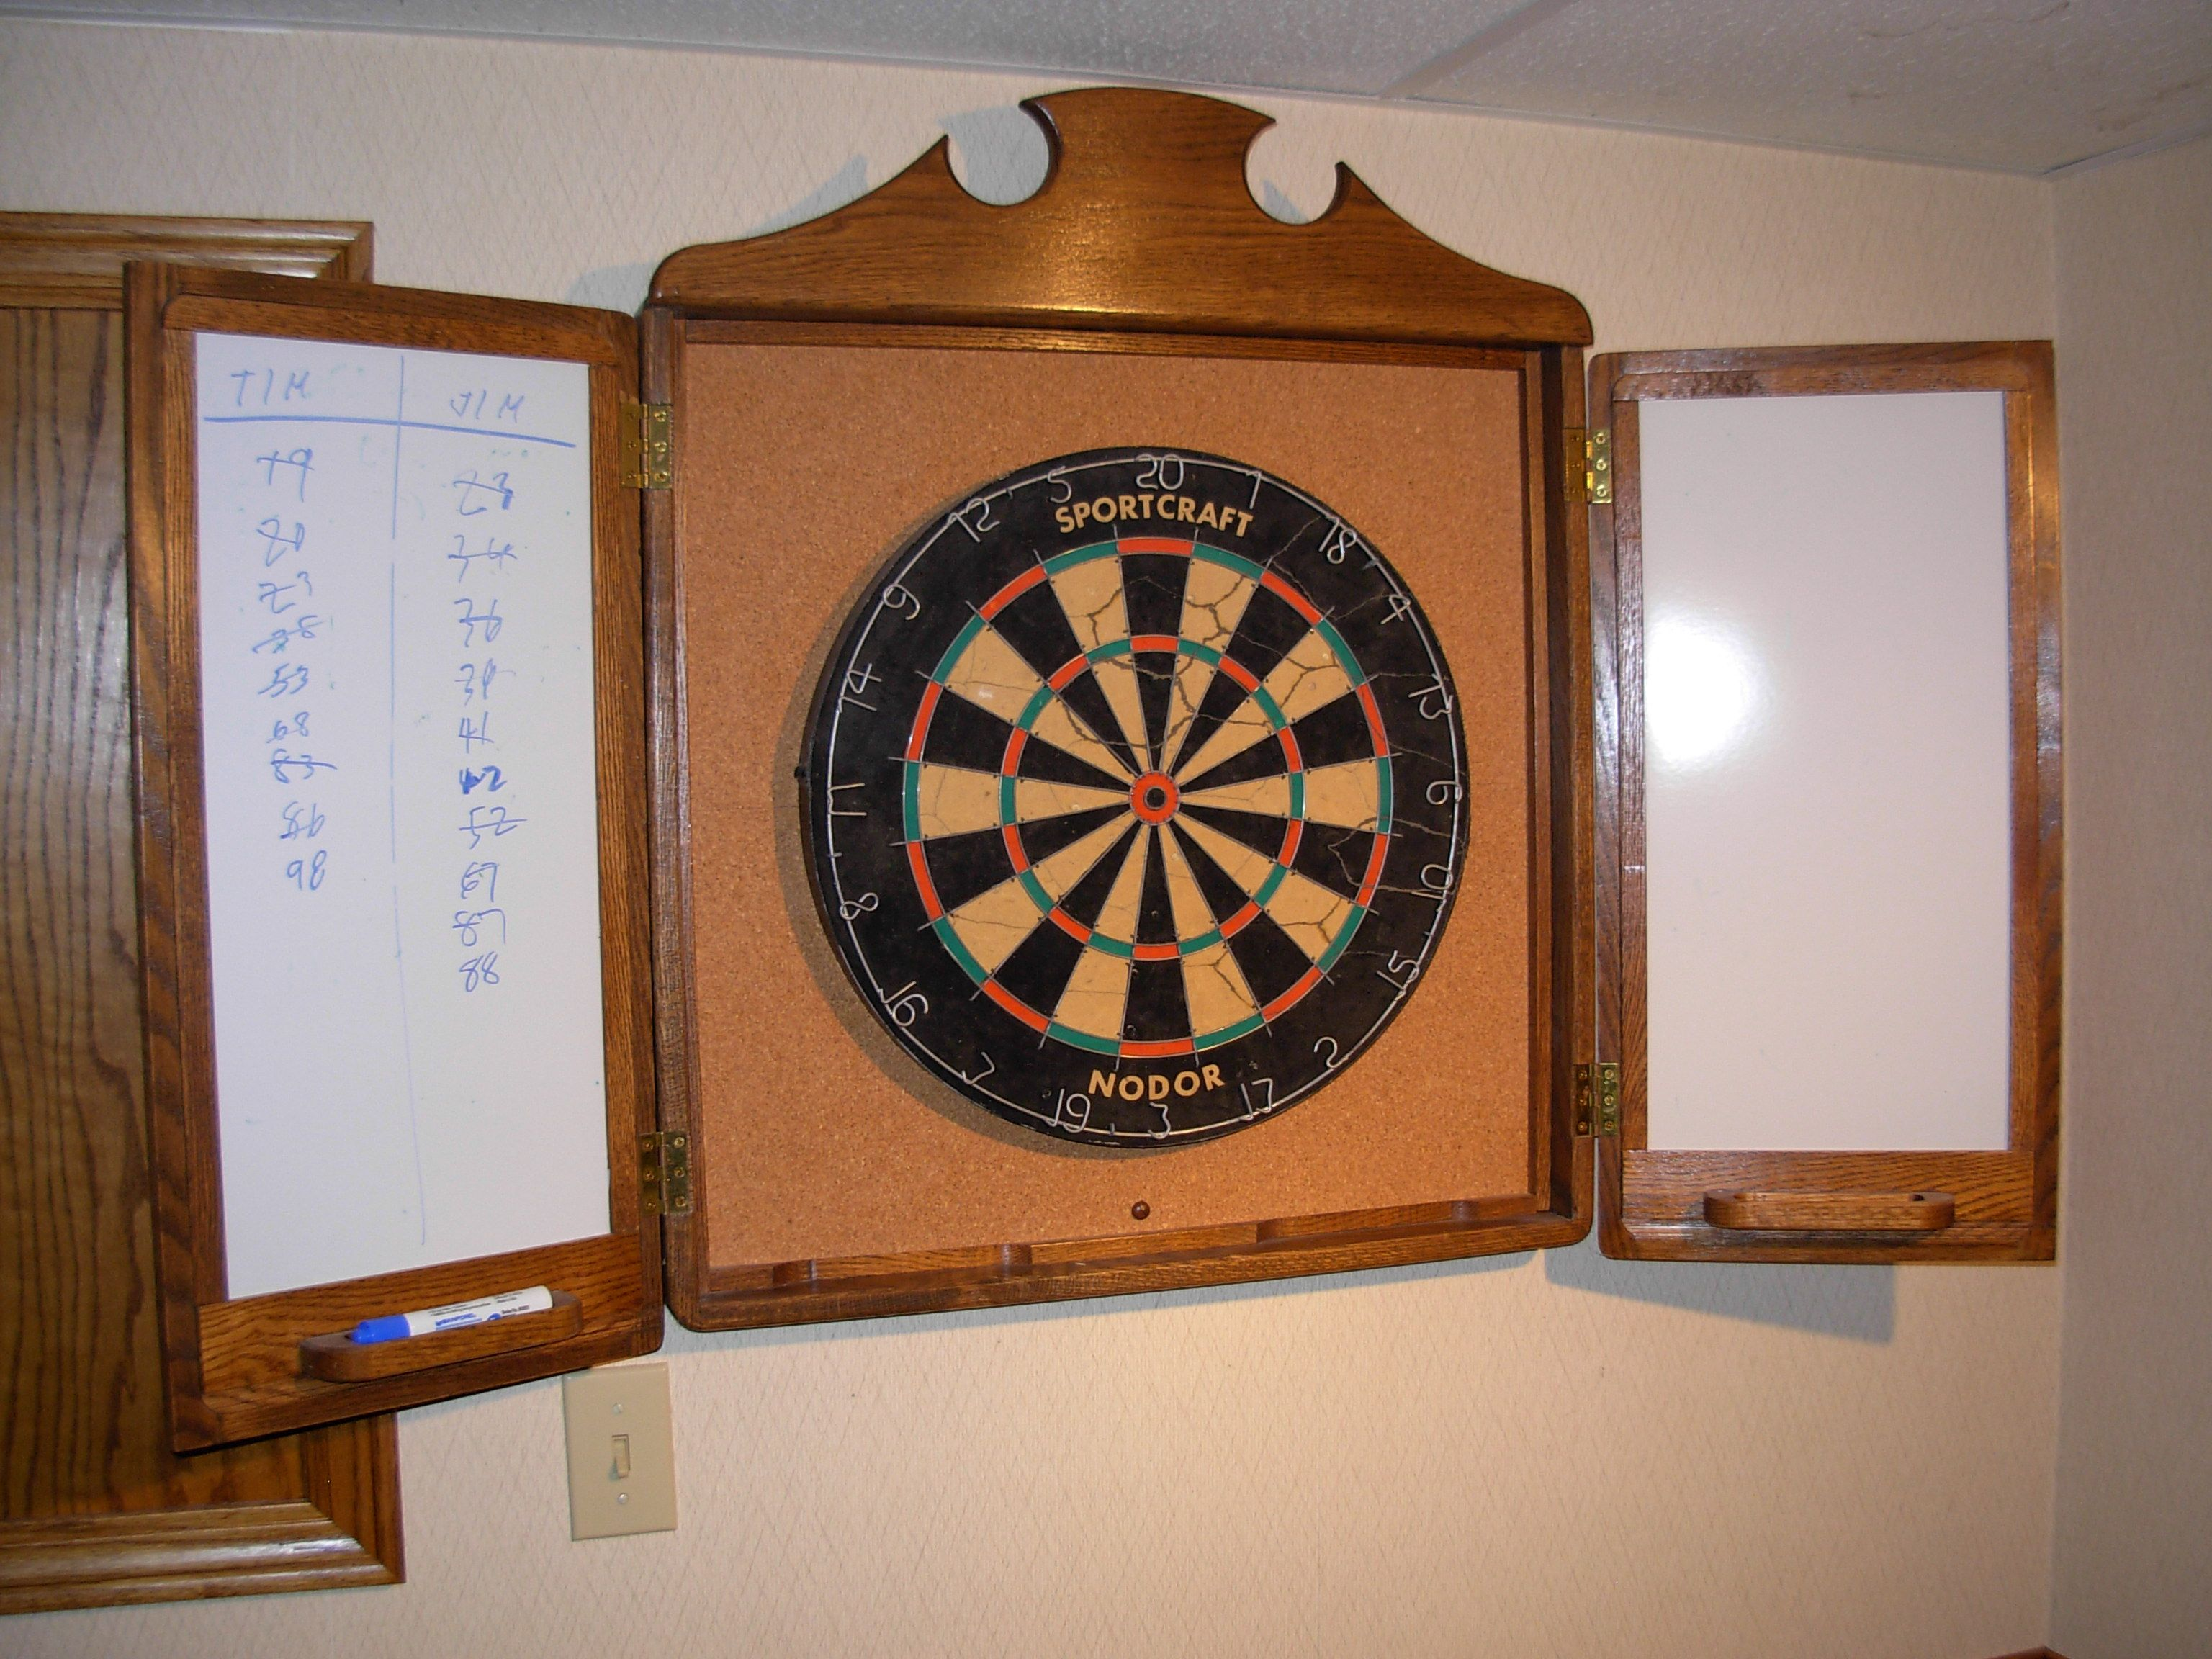 Charmant Dart Board Cabinet With Cork Back And Dry Erase Boards On Each Side |  Practical Wood Products | Pinterest | Dart Board Cabinet, Erase Board And  Cork